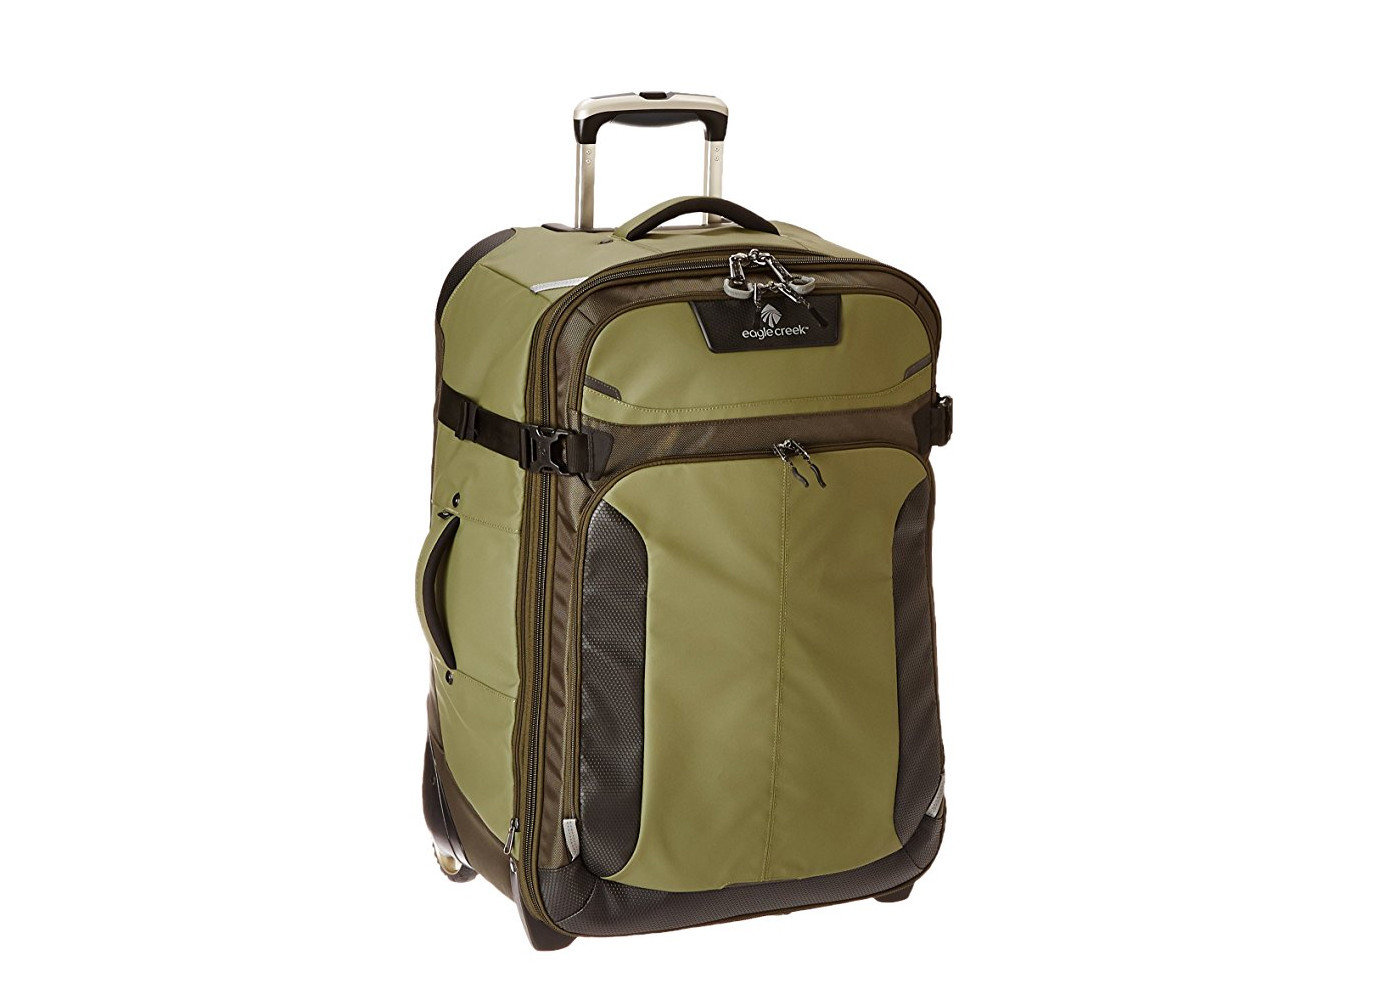 Style + Design luggage suitcase bag accessory hand luggage indoor piece backpack case colored